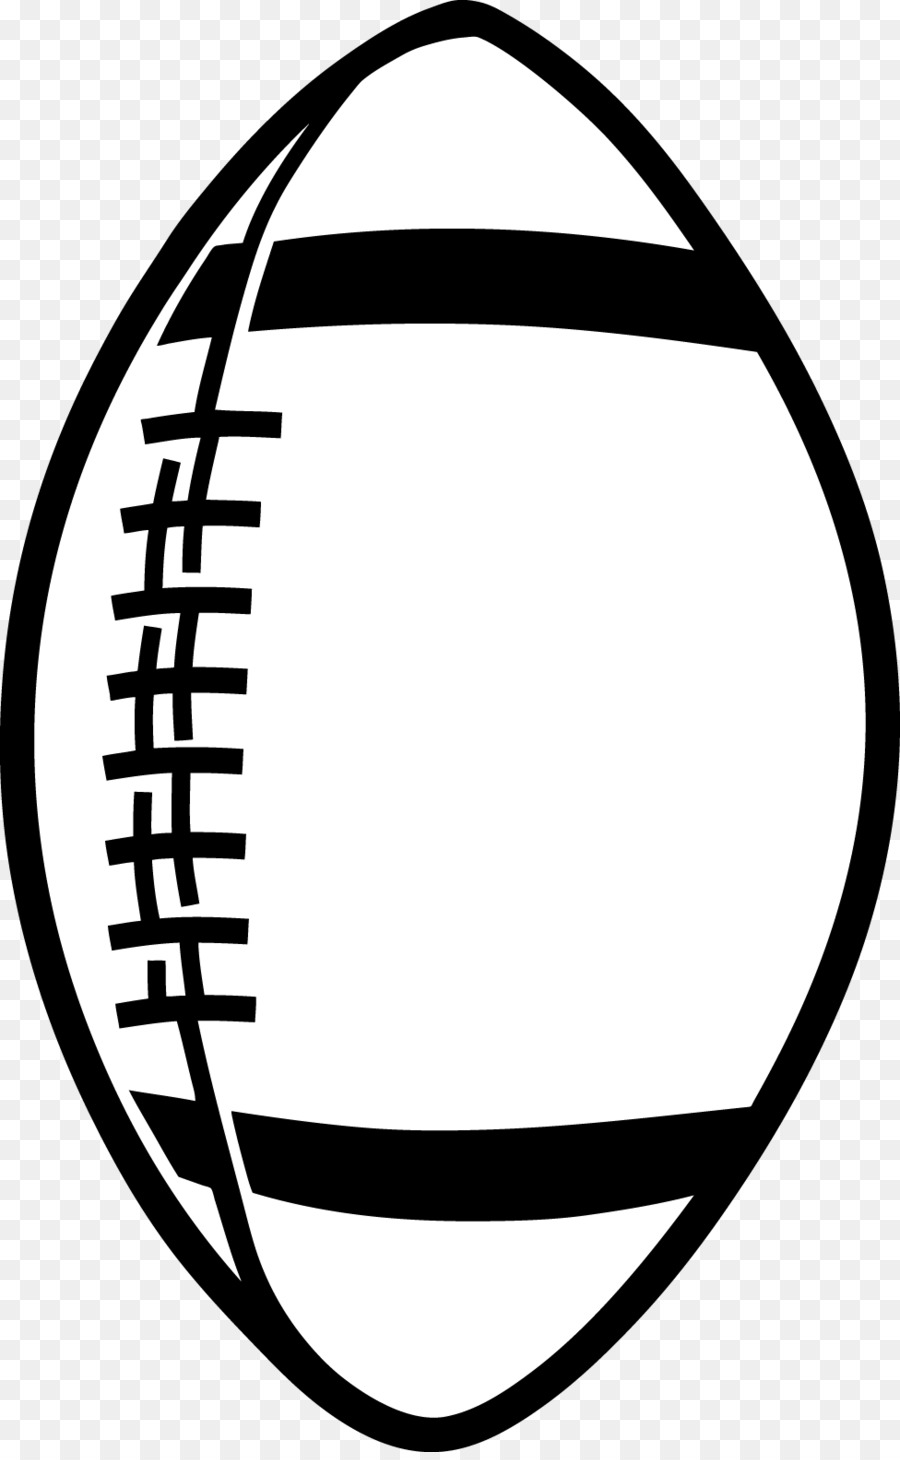 american football black and white clip art